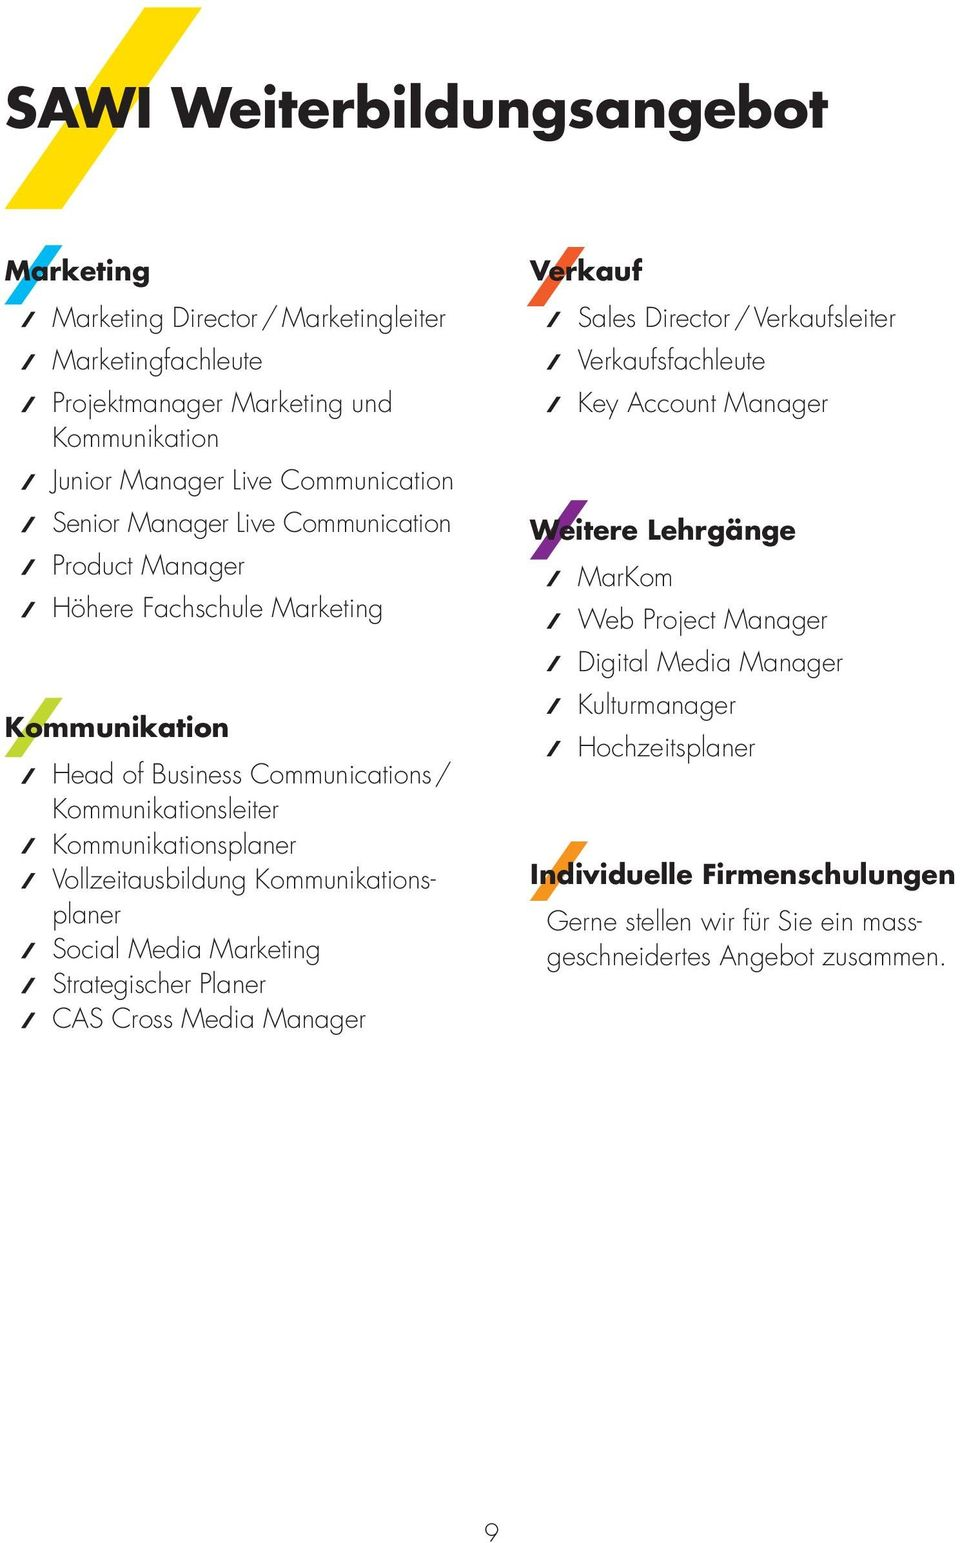 Kommunikationsplaner Social Media Marketing Strategischer Planer CAS Cross Media Manager Verkauf Sales Director / Verkaufsleiter Verkaufsfachleute Key Account Manager Weitere